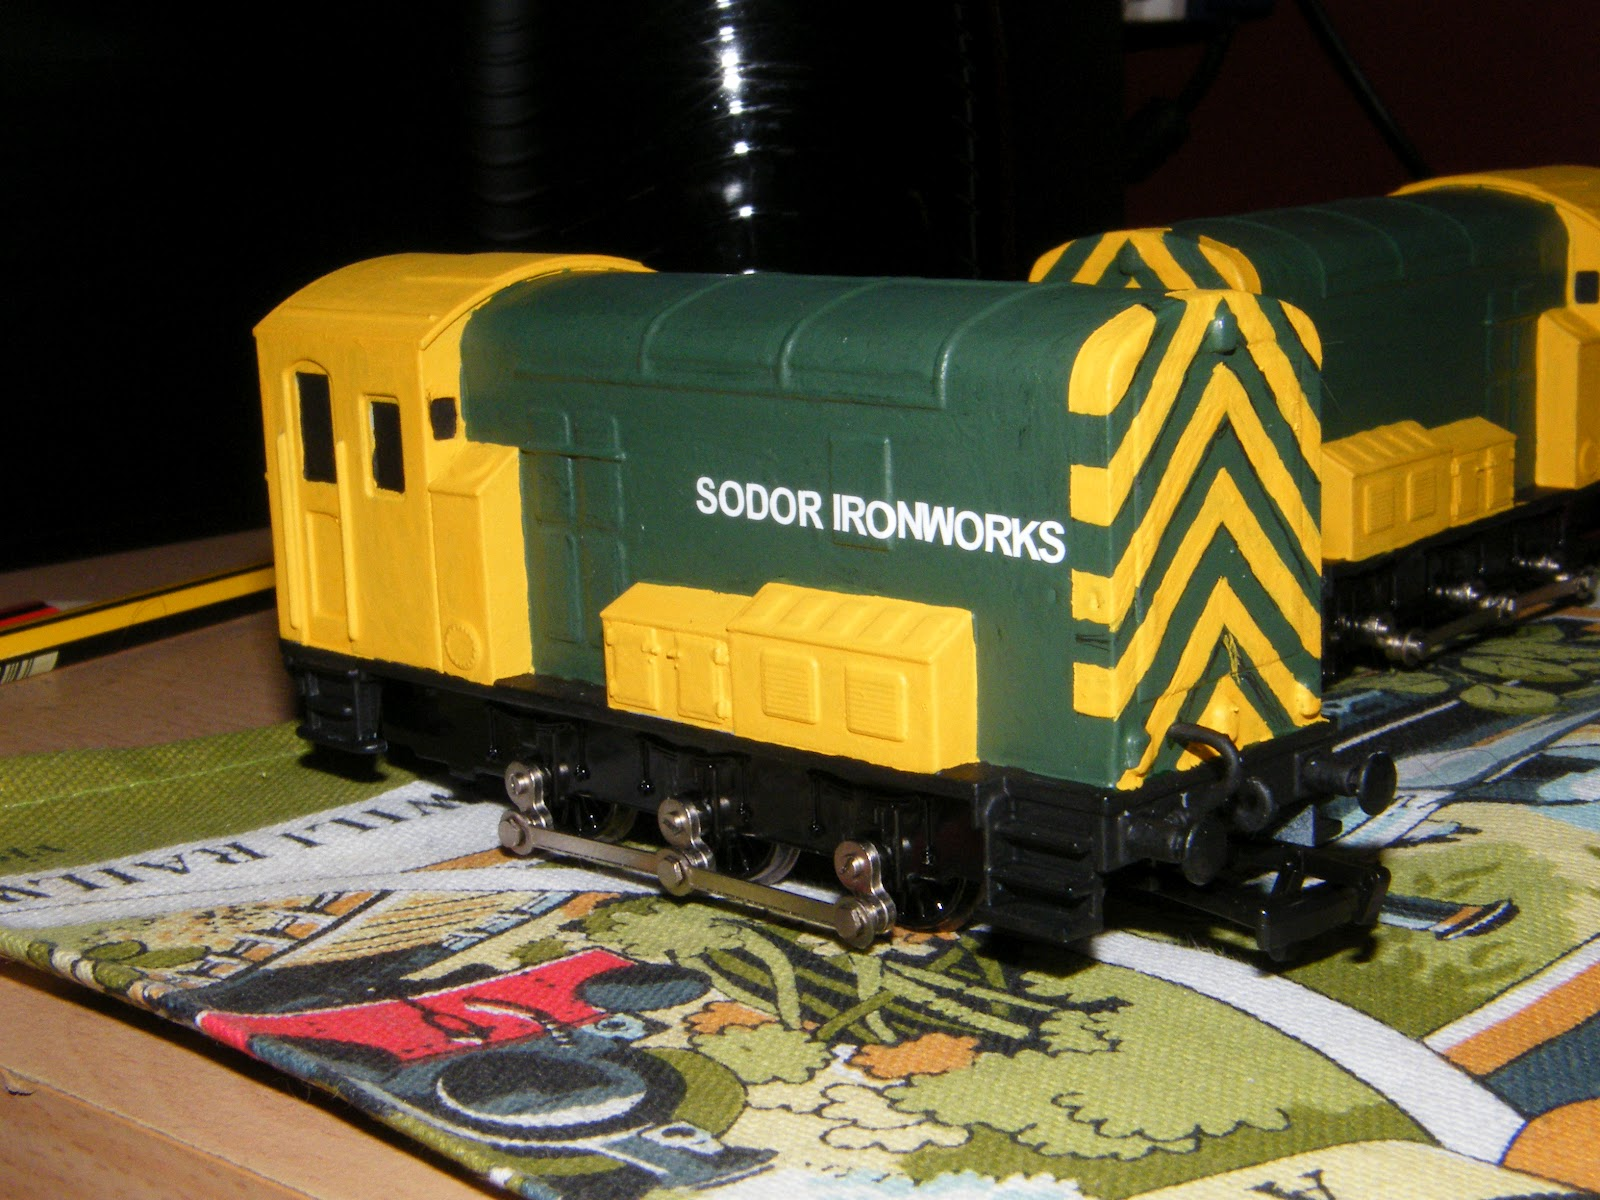 The World Of Thomas The Tank Engine Modelling: The Sodor